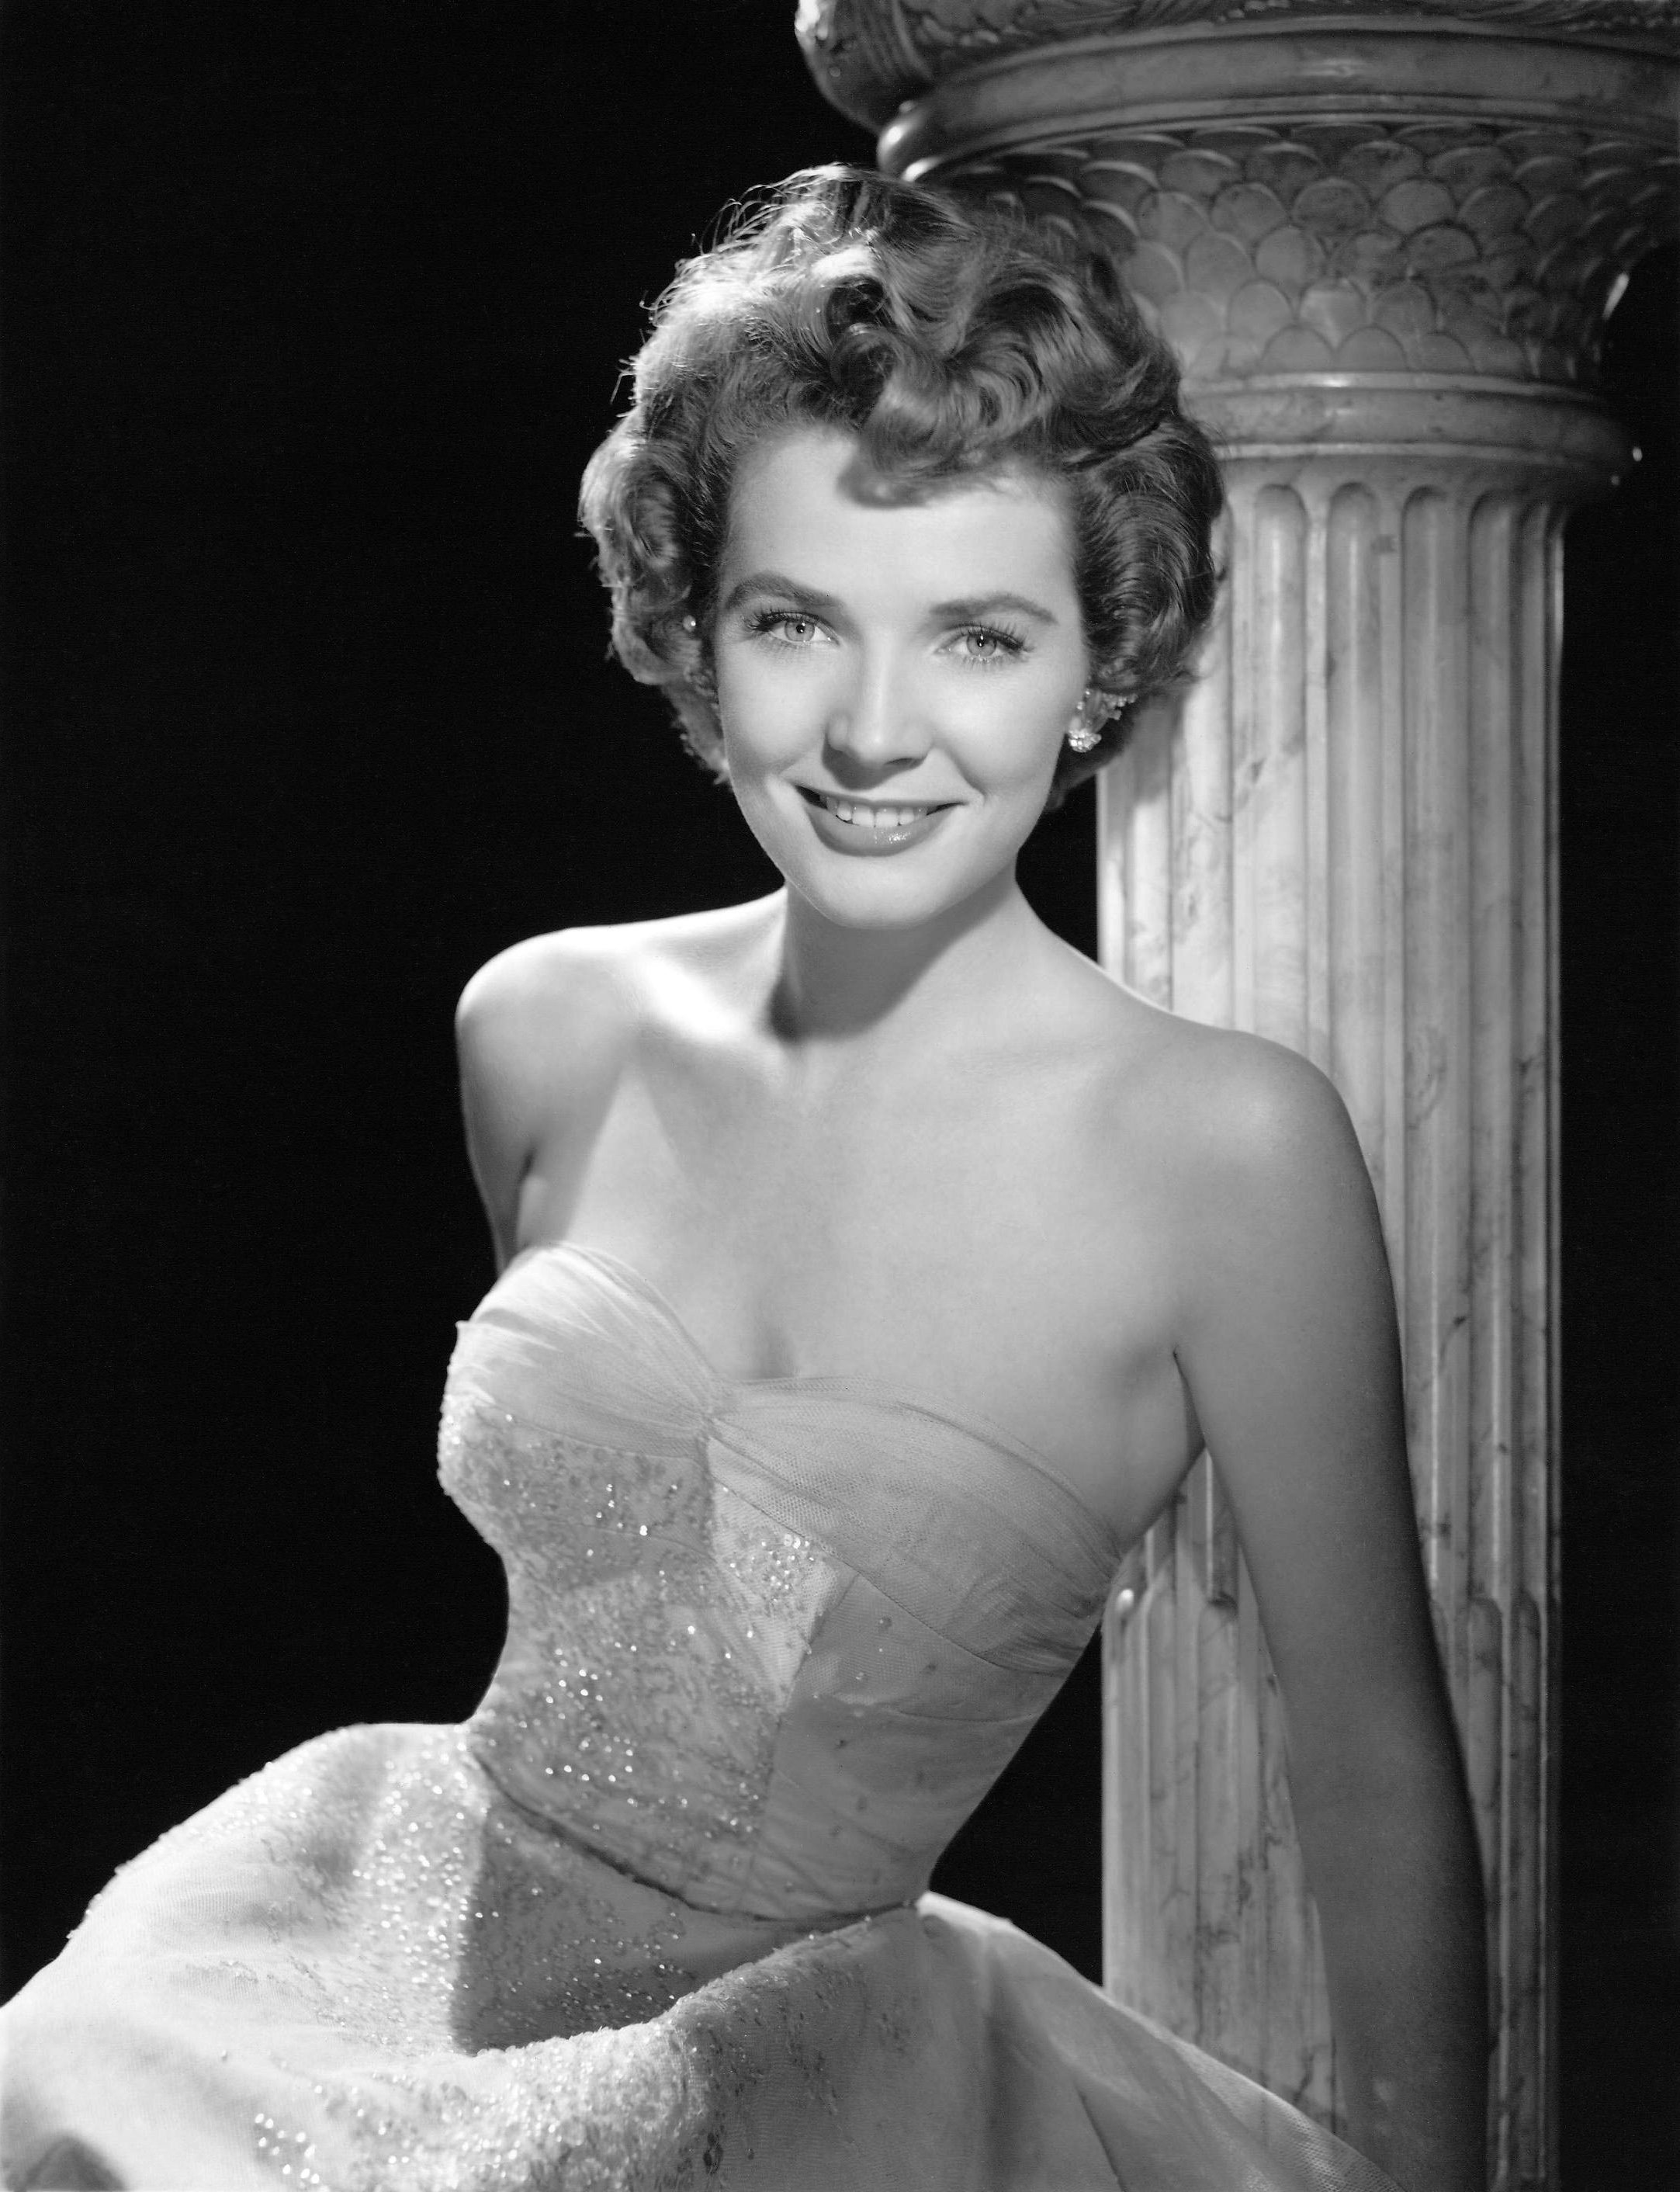 Polly Bergen nudes (18 photo), Sexy, Leaked, Boobs, butt 2019